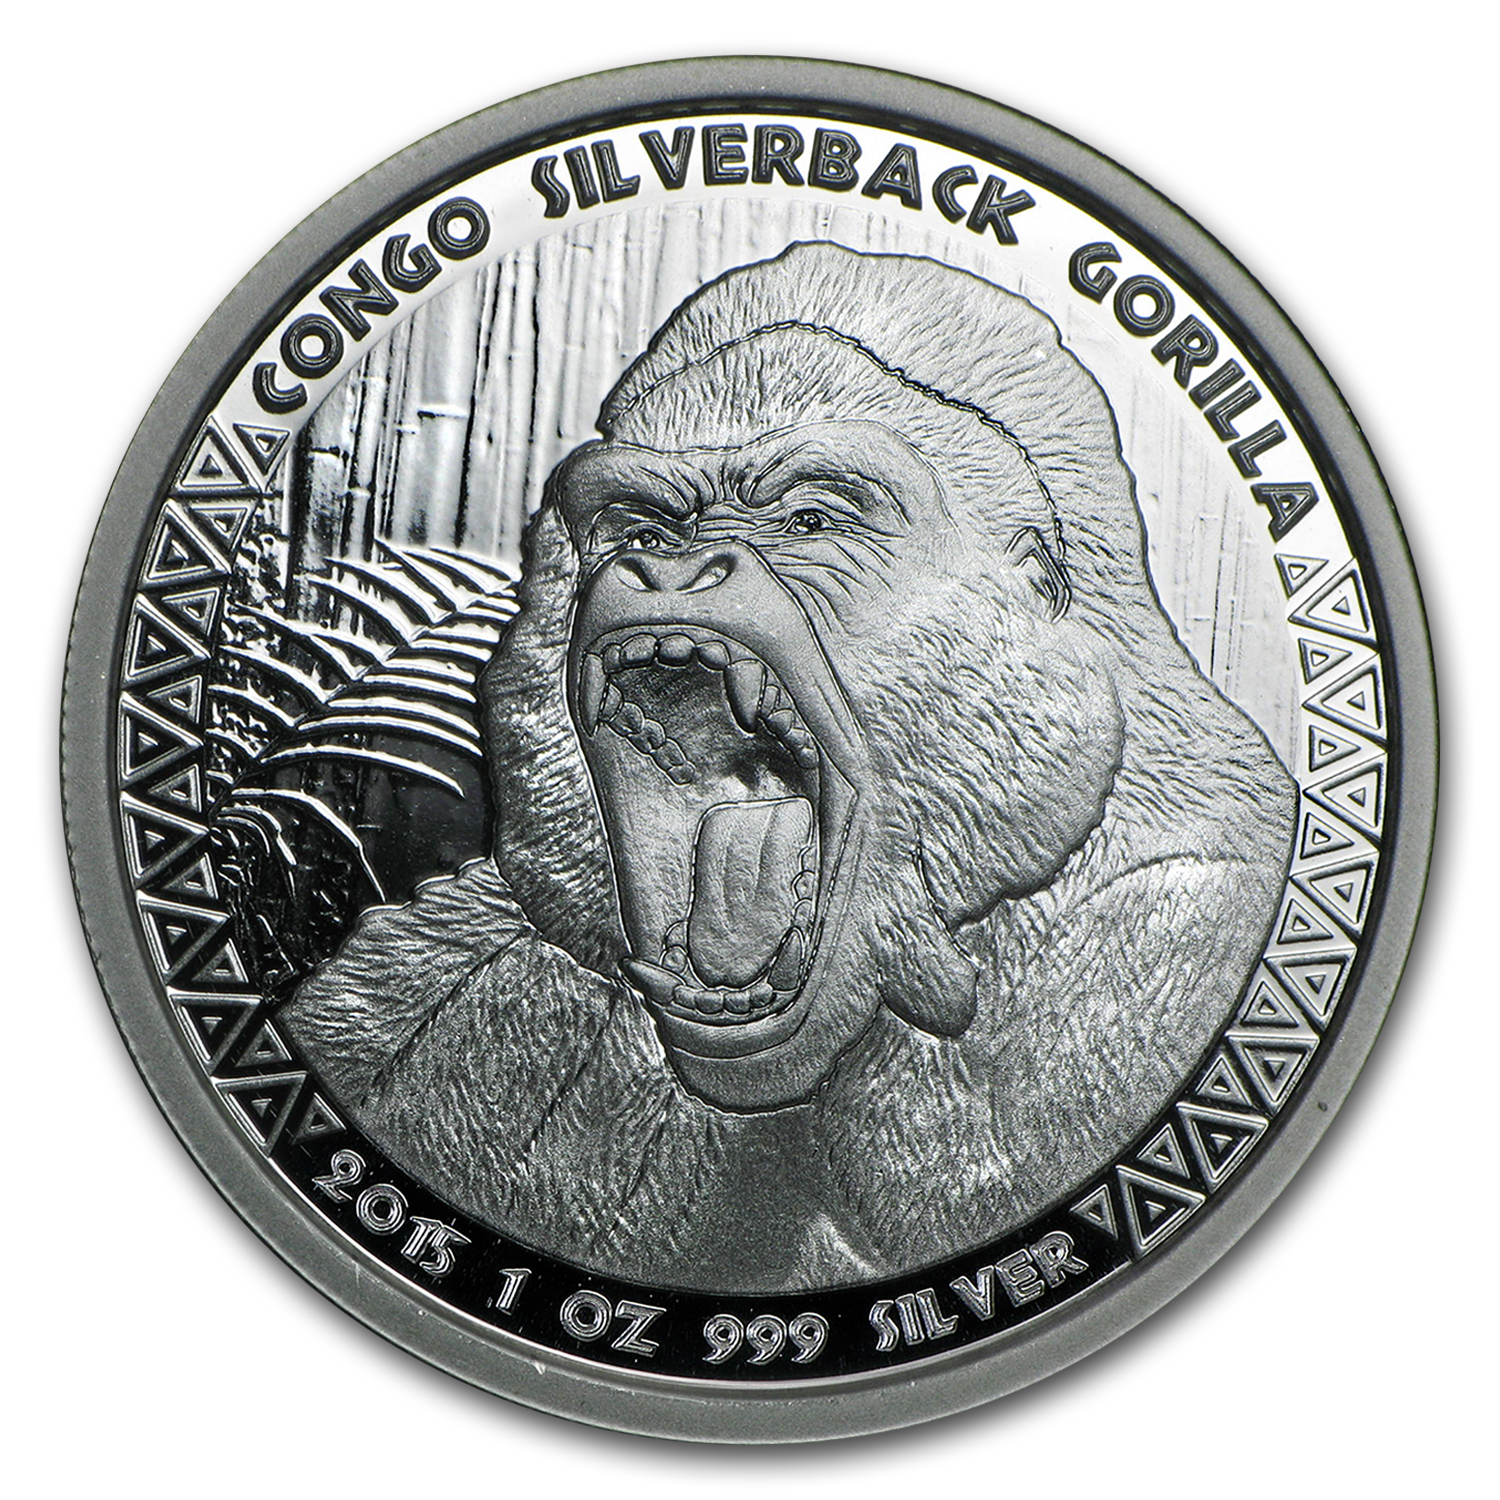 2015 Republic of Congo 1 oz Silverback Gorilla (Prooflike)